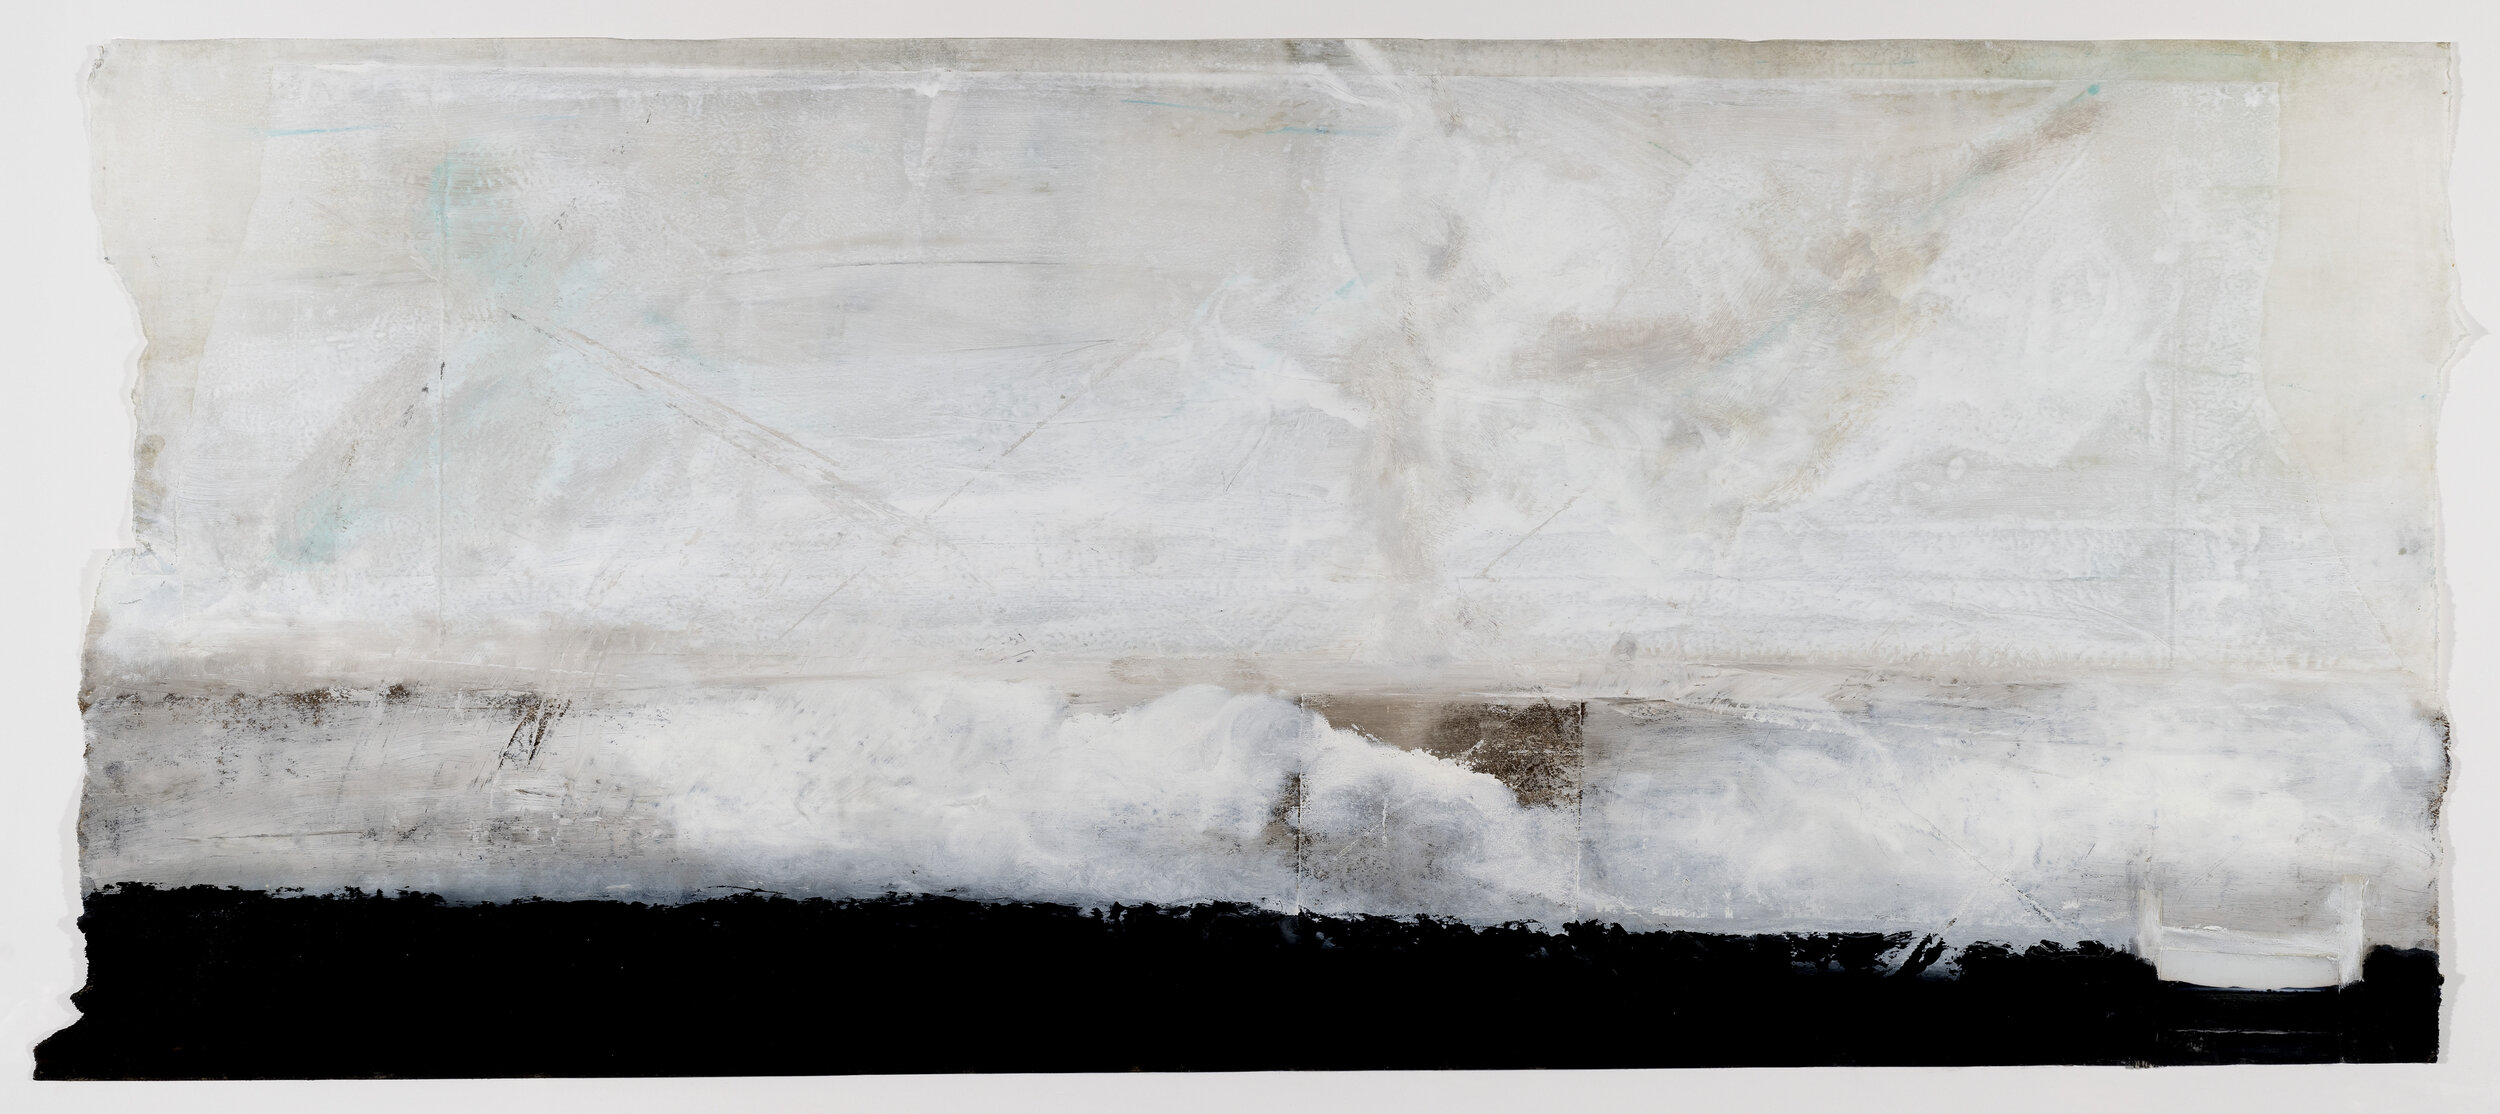 Polaroid Wave, 2019, encaustic wax on Japanese rice paper, 32 x 56 in, $5,000